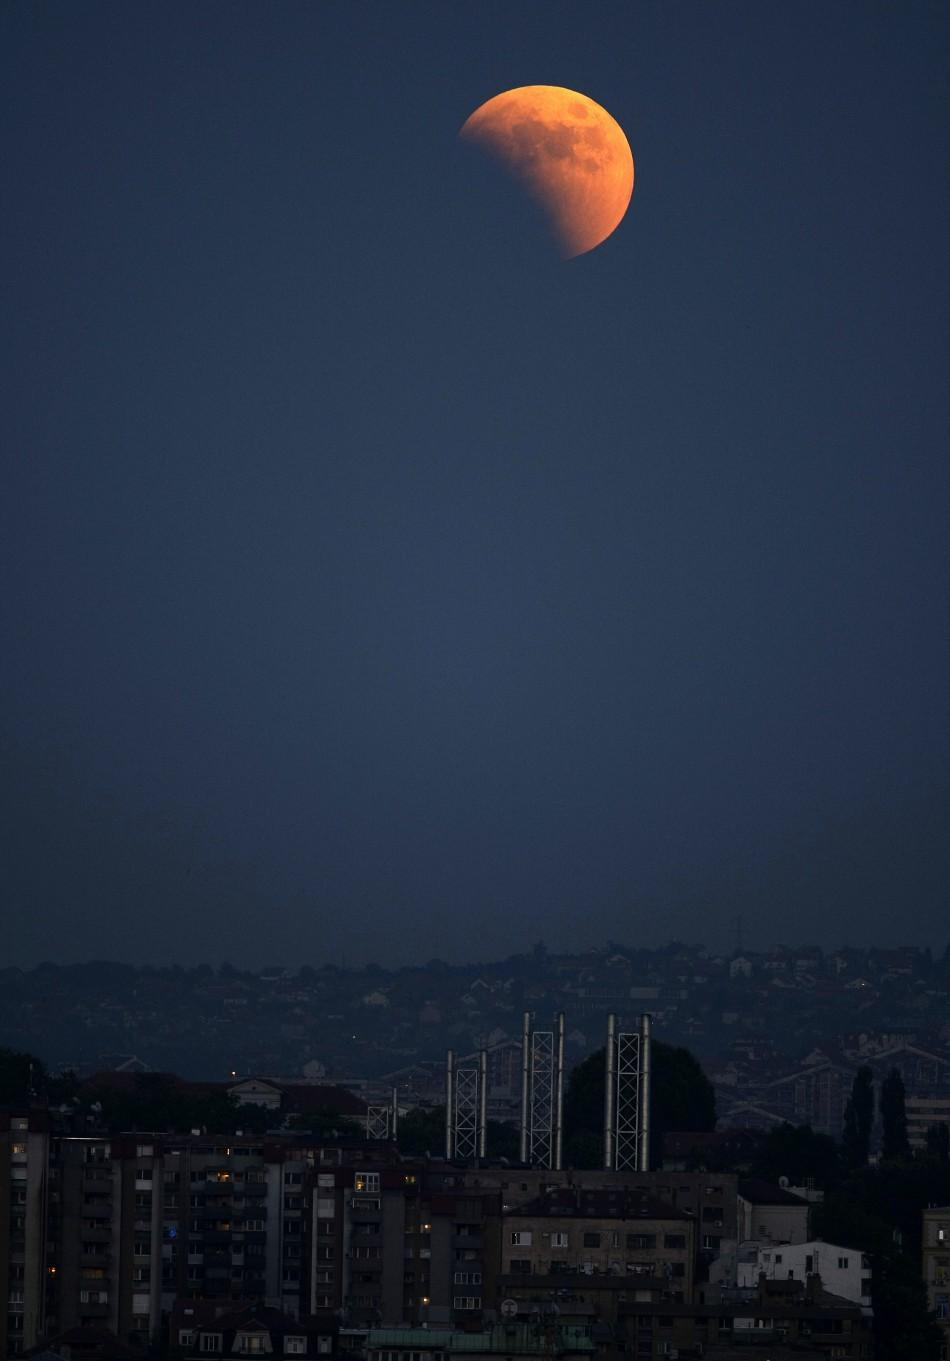 Lunar Eclipse 2011: Spectacular red moon images over blue skies (PHOTOS)